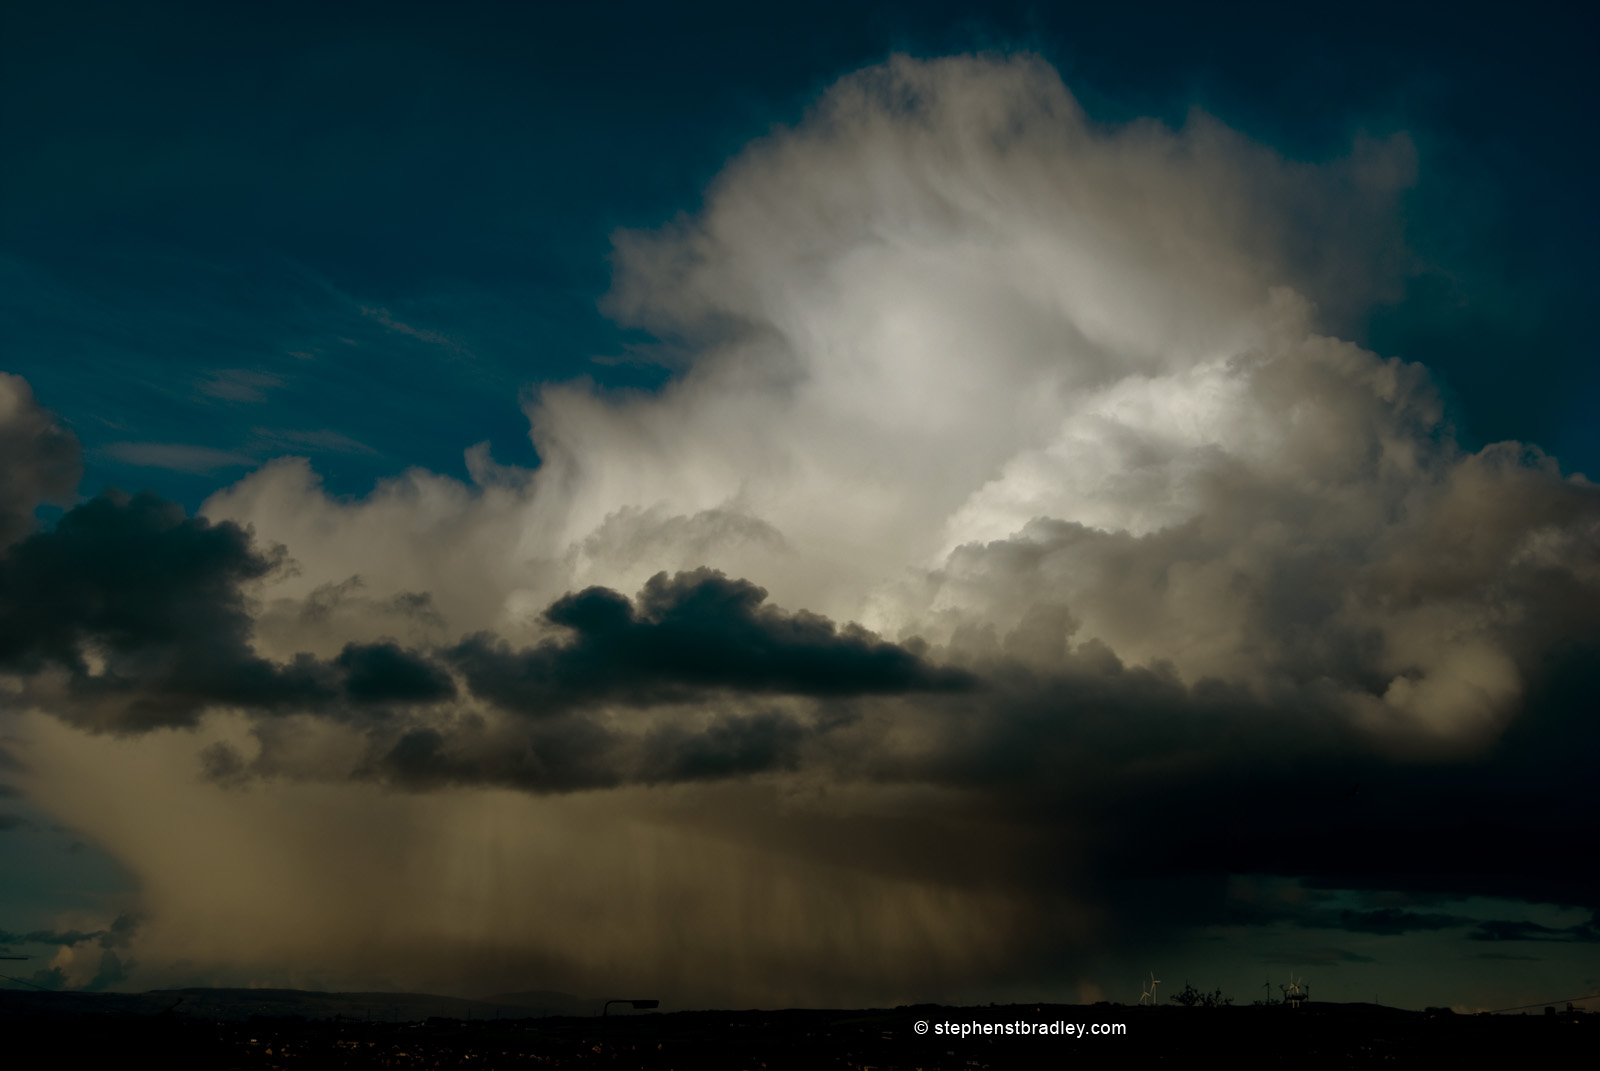 Dramatic sky over Glengormley Northern Ireland- image1023.